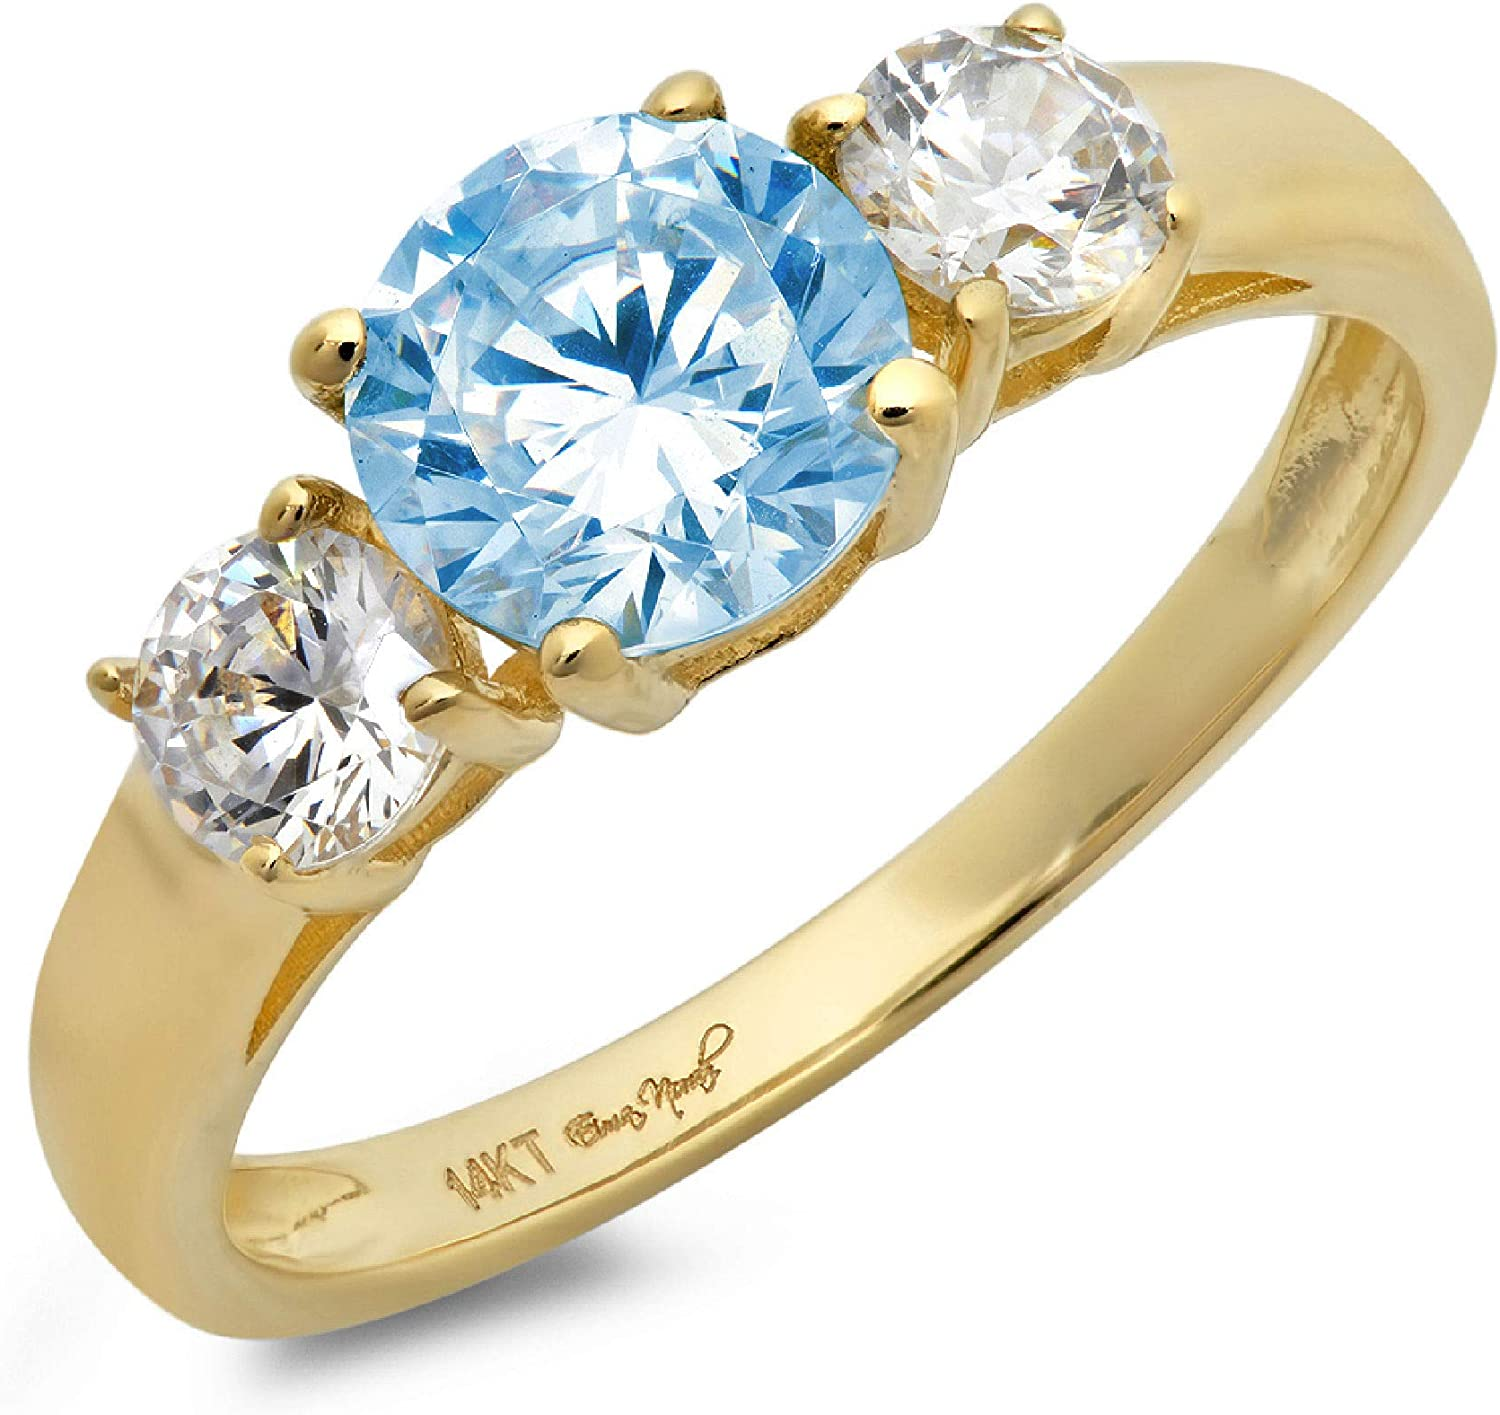 1.50ct Brilliant Round Cut Solitaire 3 stone Genuine Flawless Blue Simulated Diamond Gemstone Engagement Promise Statement Anniversary Bridal Wedding Ring Solid 18K Yellow Gold